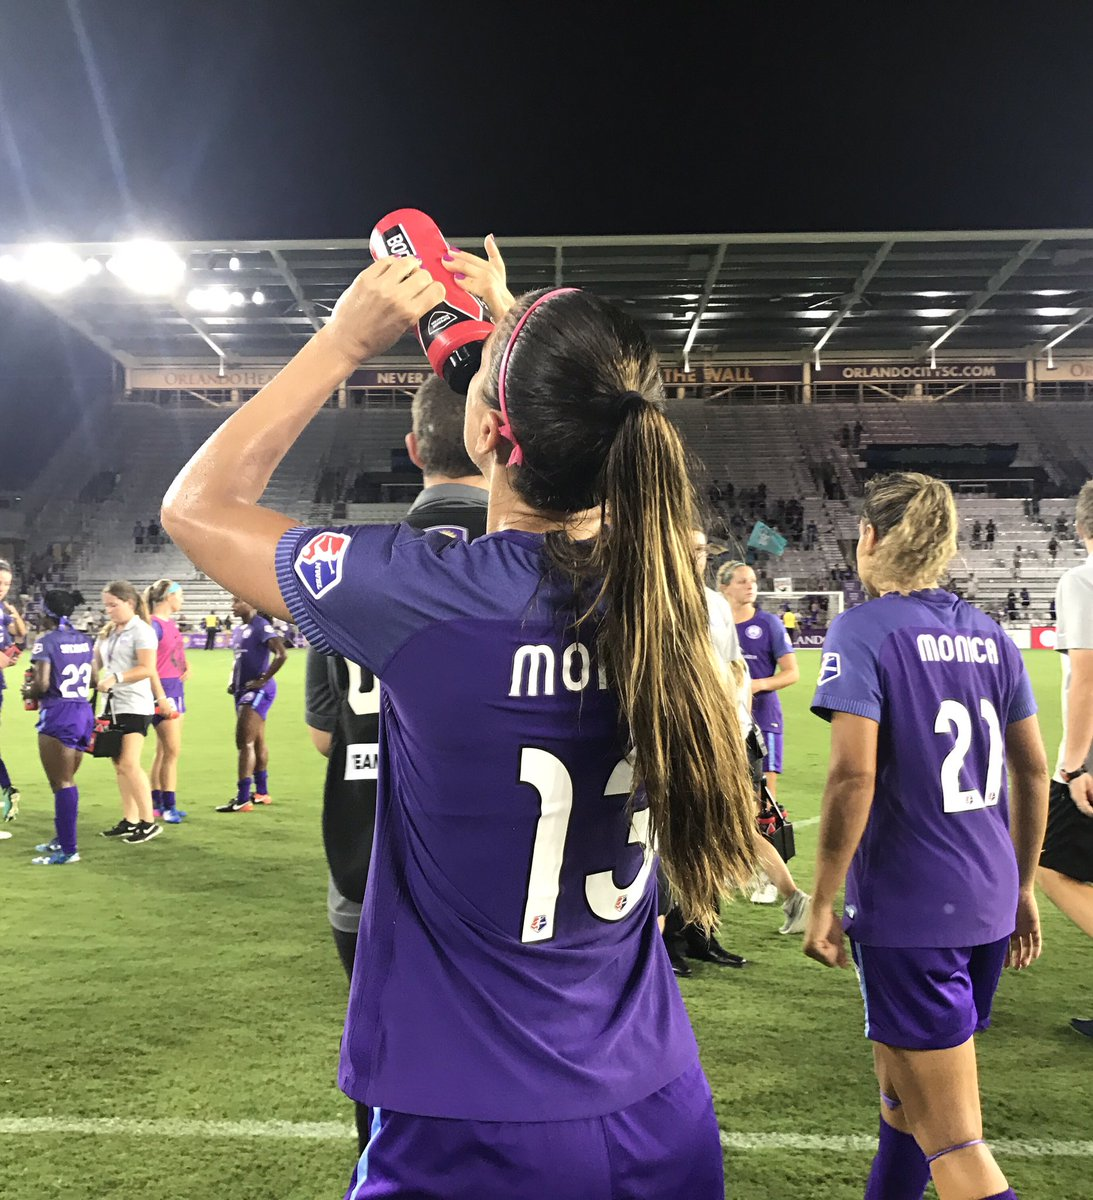 #AlexMorgan RT @ORLPride: Your Star of the Match staying &#39;drated <br>http://pic.twitter.com/Z8Sy7FOcqw